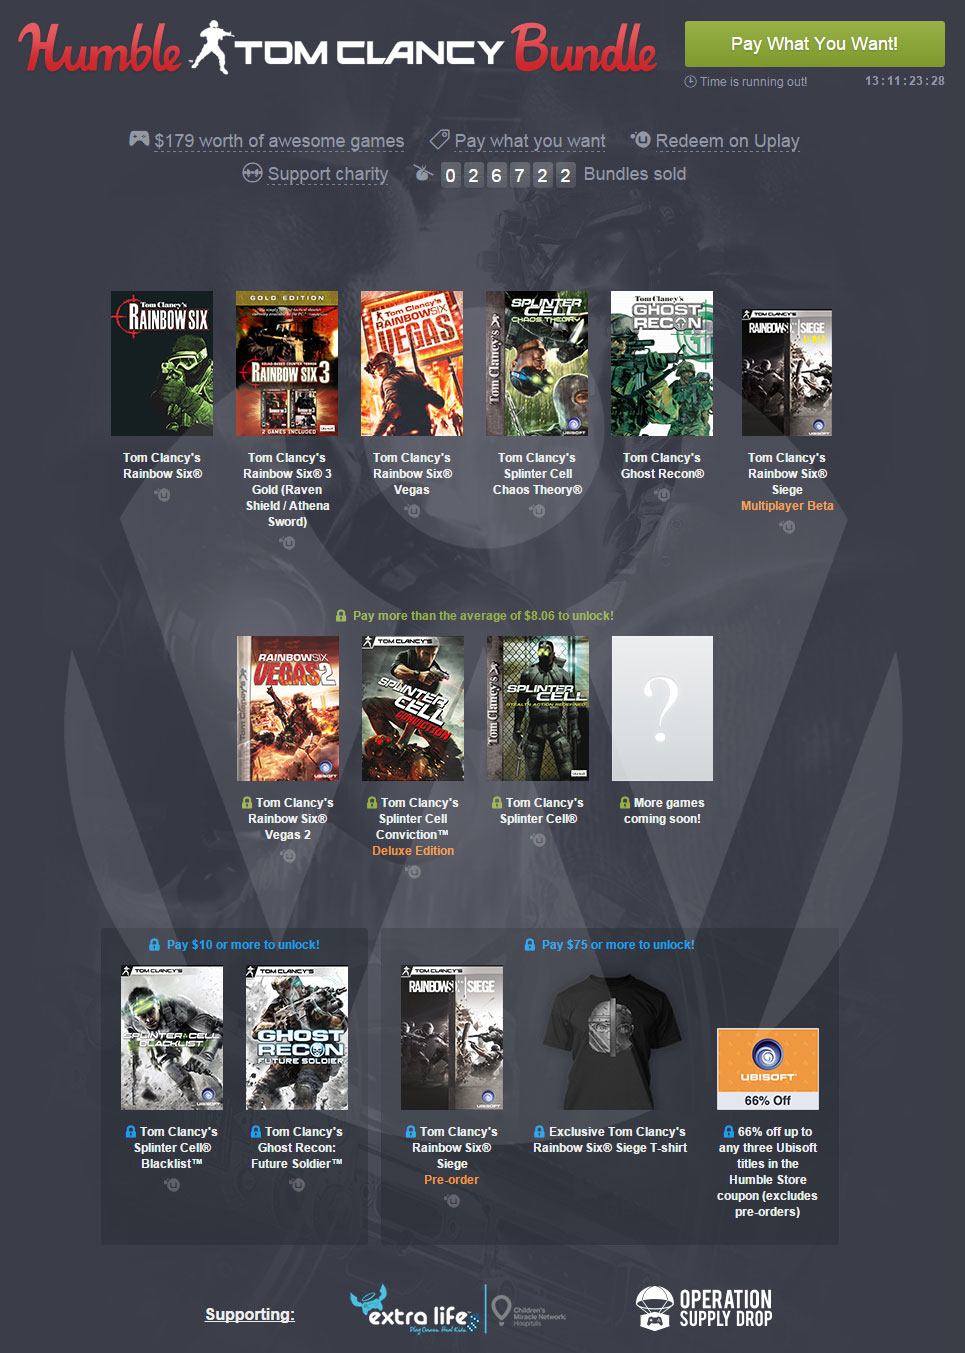 humble-bundle_tom-clancy_201509